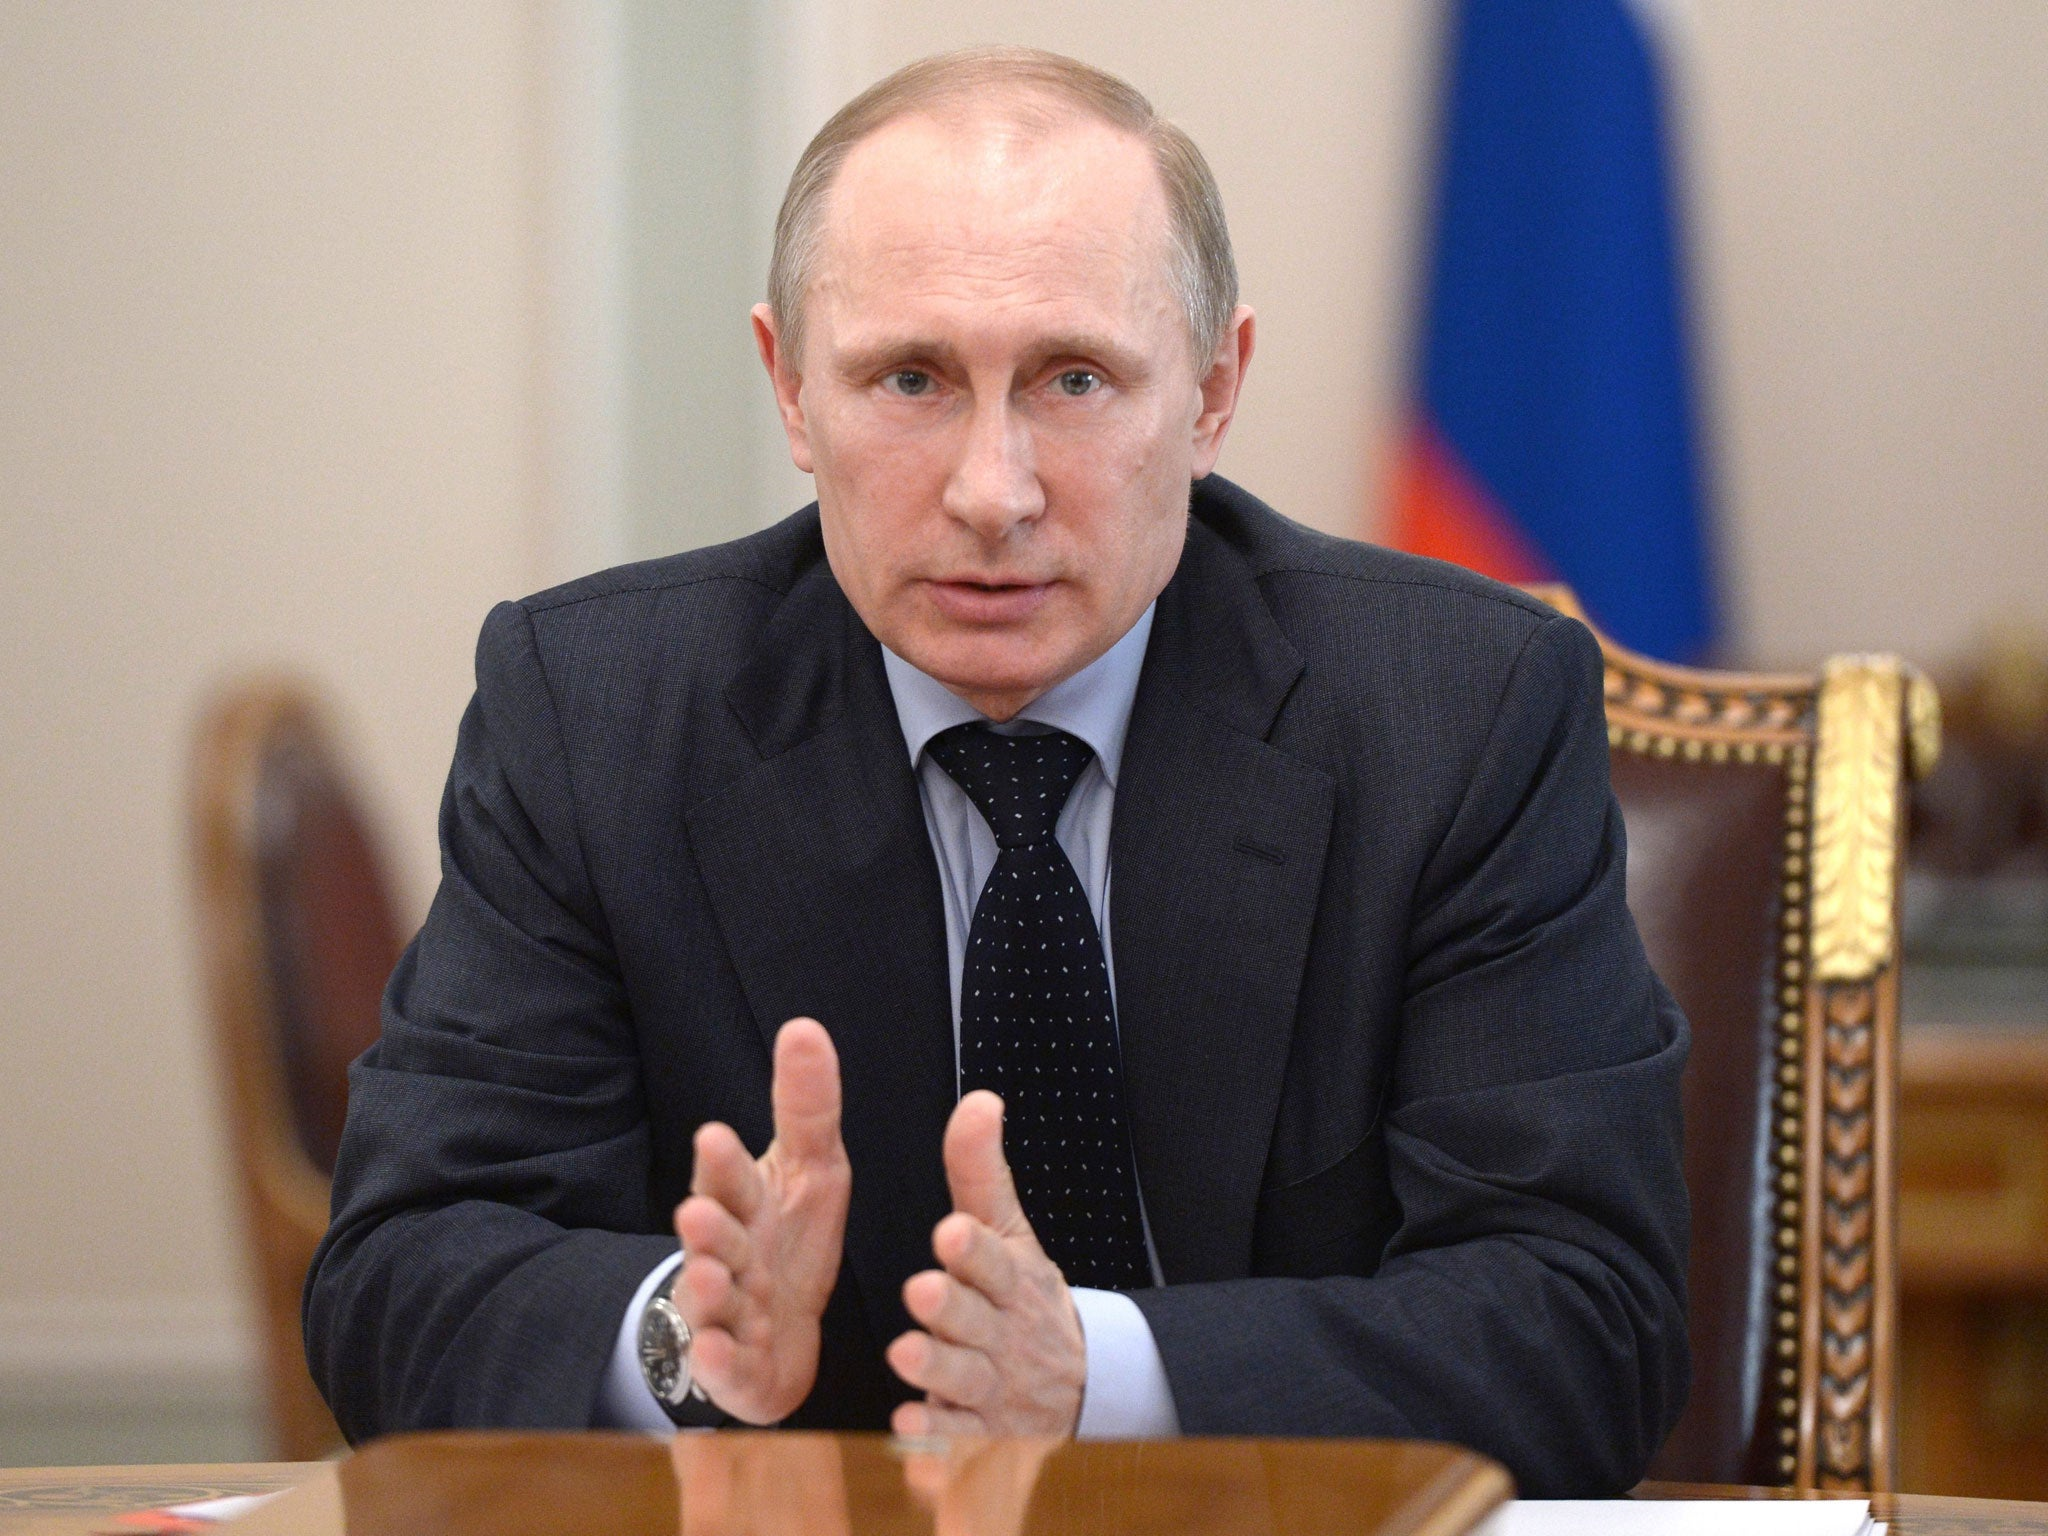 Vladimir Putin Wants To Regain Finland For Russia Adviser Says The Independent The Independent